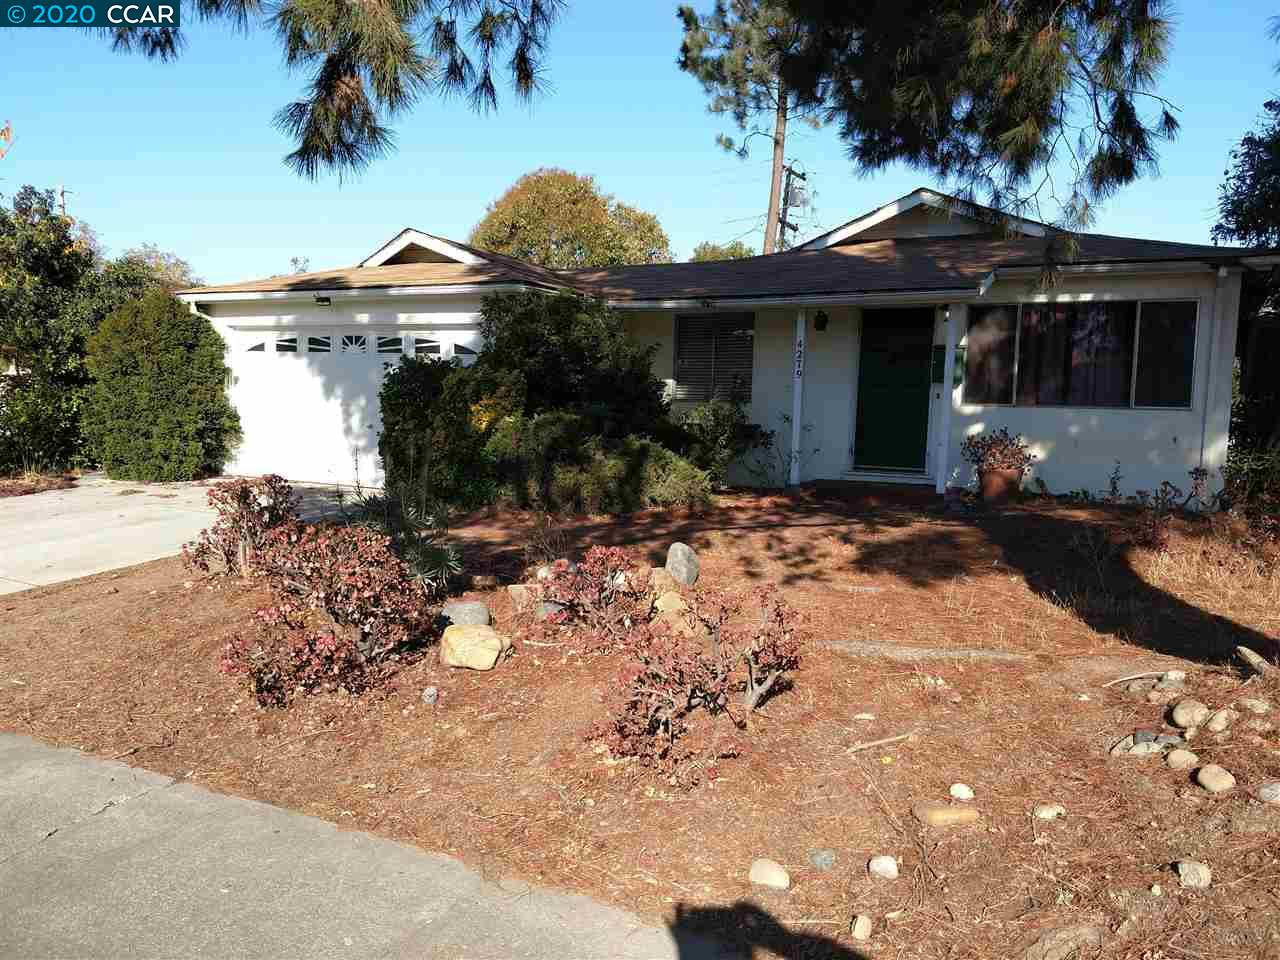 OPPORTUNITY IS KNOCKING. Take this charming fixer-upper original configuration home and remodel to your own personal preferences. Its a former rental, a little worn and dated inside. Space for possible Boat or RV parking on side yard.  Bring All Offers !